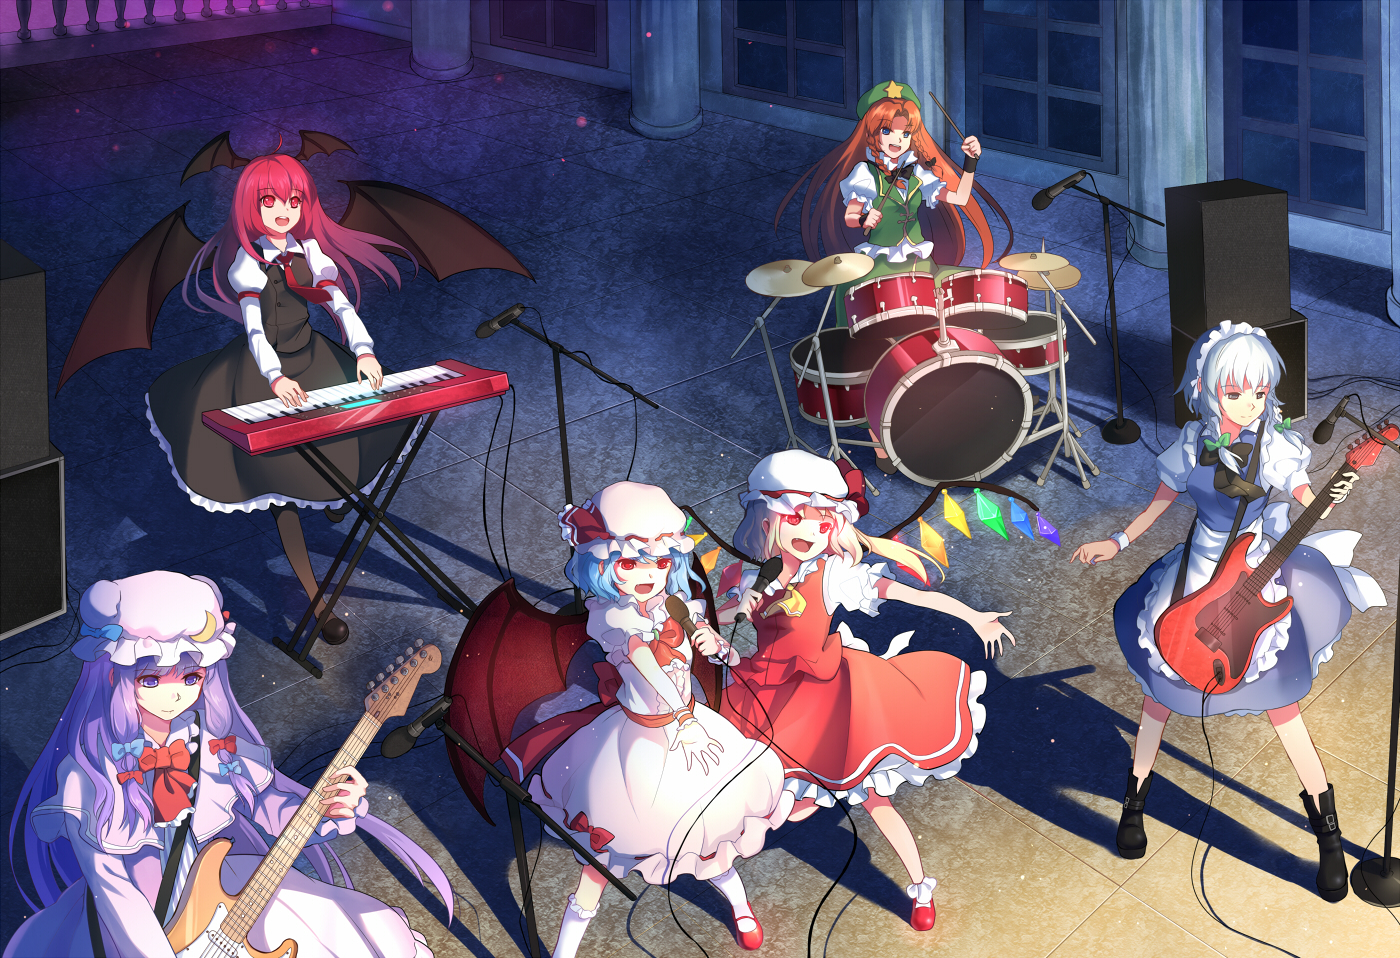 blonde_hair blue_hair boots braids drums flandre_scarlet gray_eyes gray_hair greetload guitar hat hong_meiling instrument izayoi_sakuya koakuma long_hair microphone patchouli_knowledge piano purple_eyes purple_hair red_eyes red_hair remilia_scarlet ribbons short_hair touhou wings